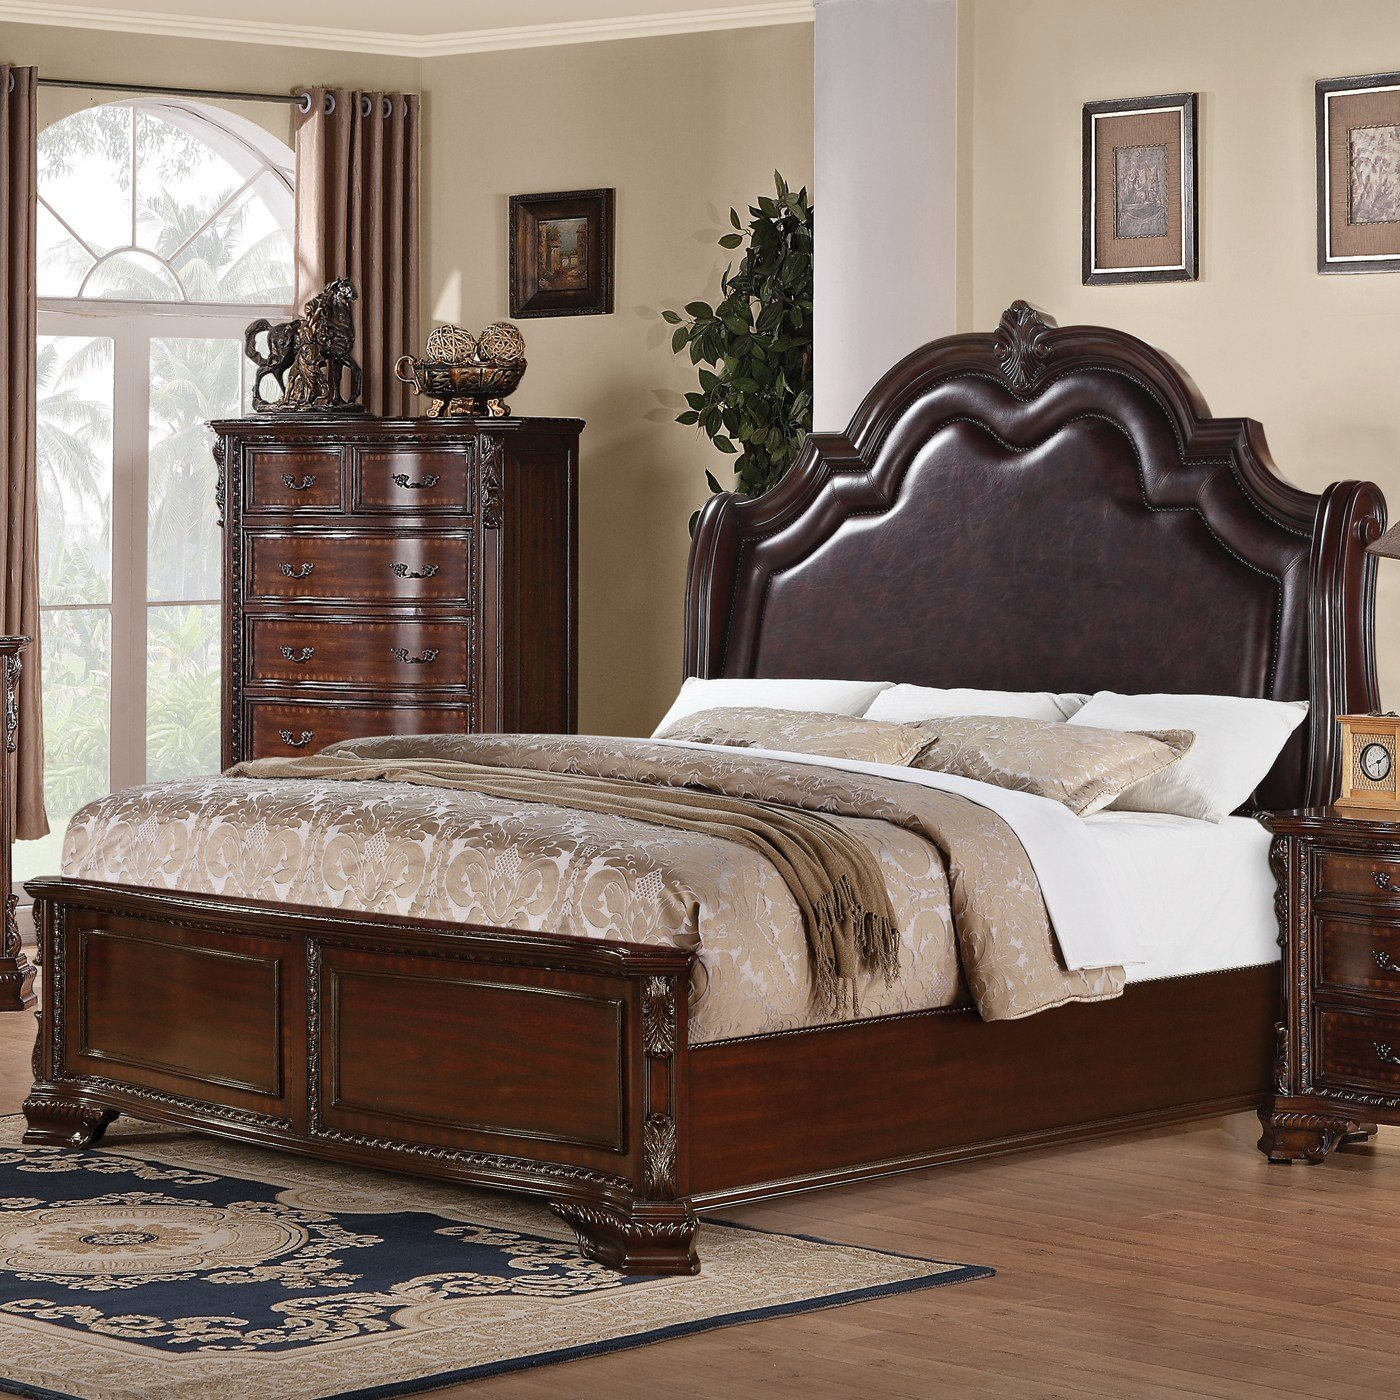 Best Coaster Fine Furniture 202260 Maddison Bed Atg Stores With Pictures